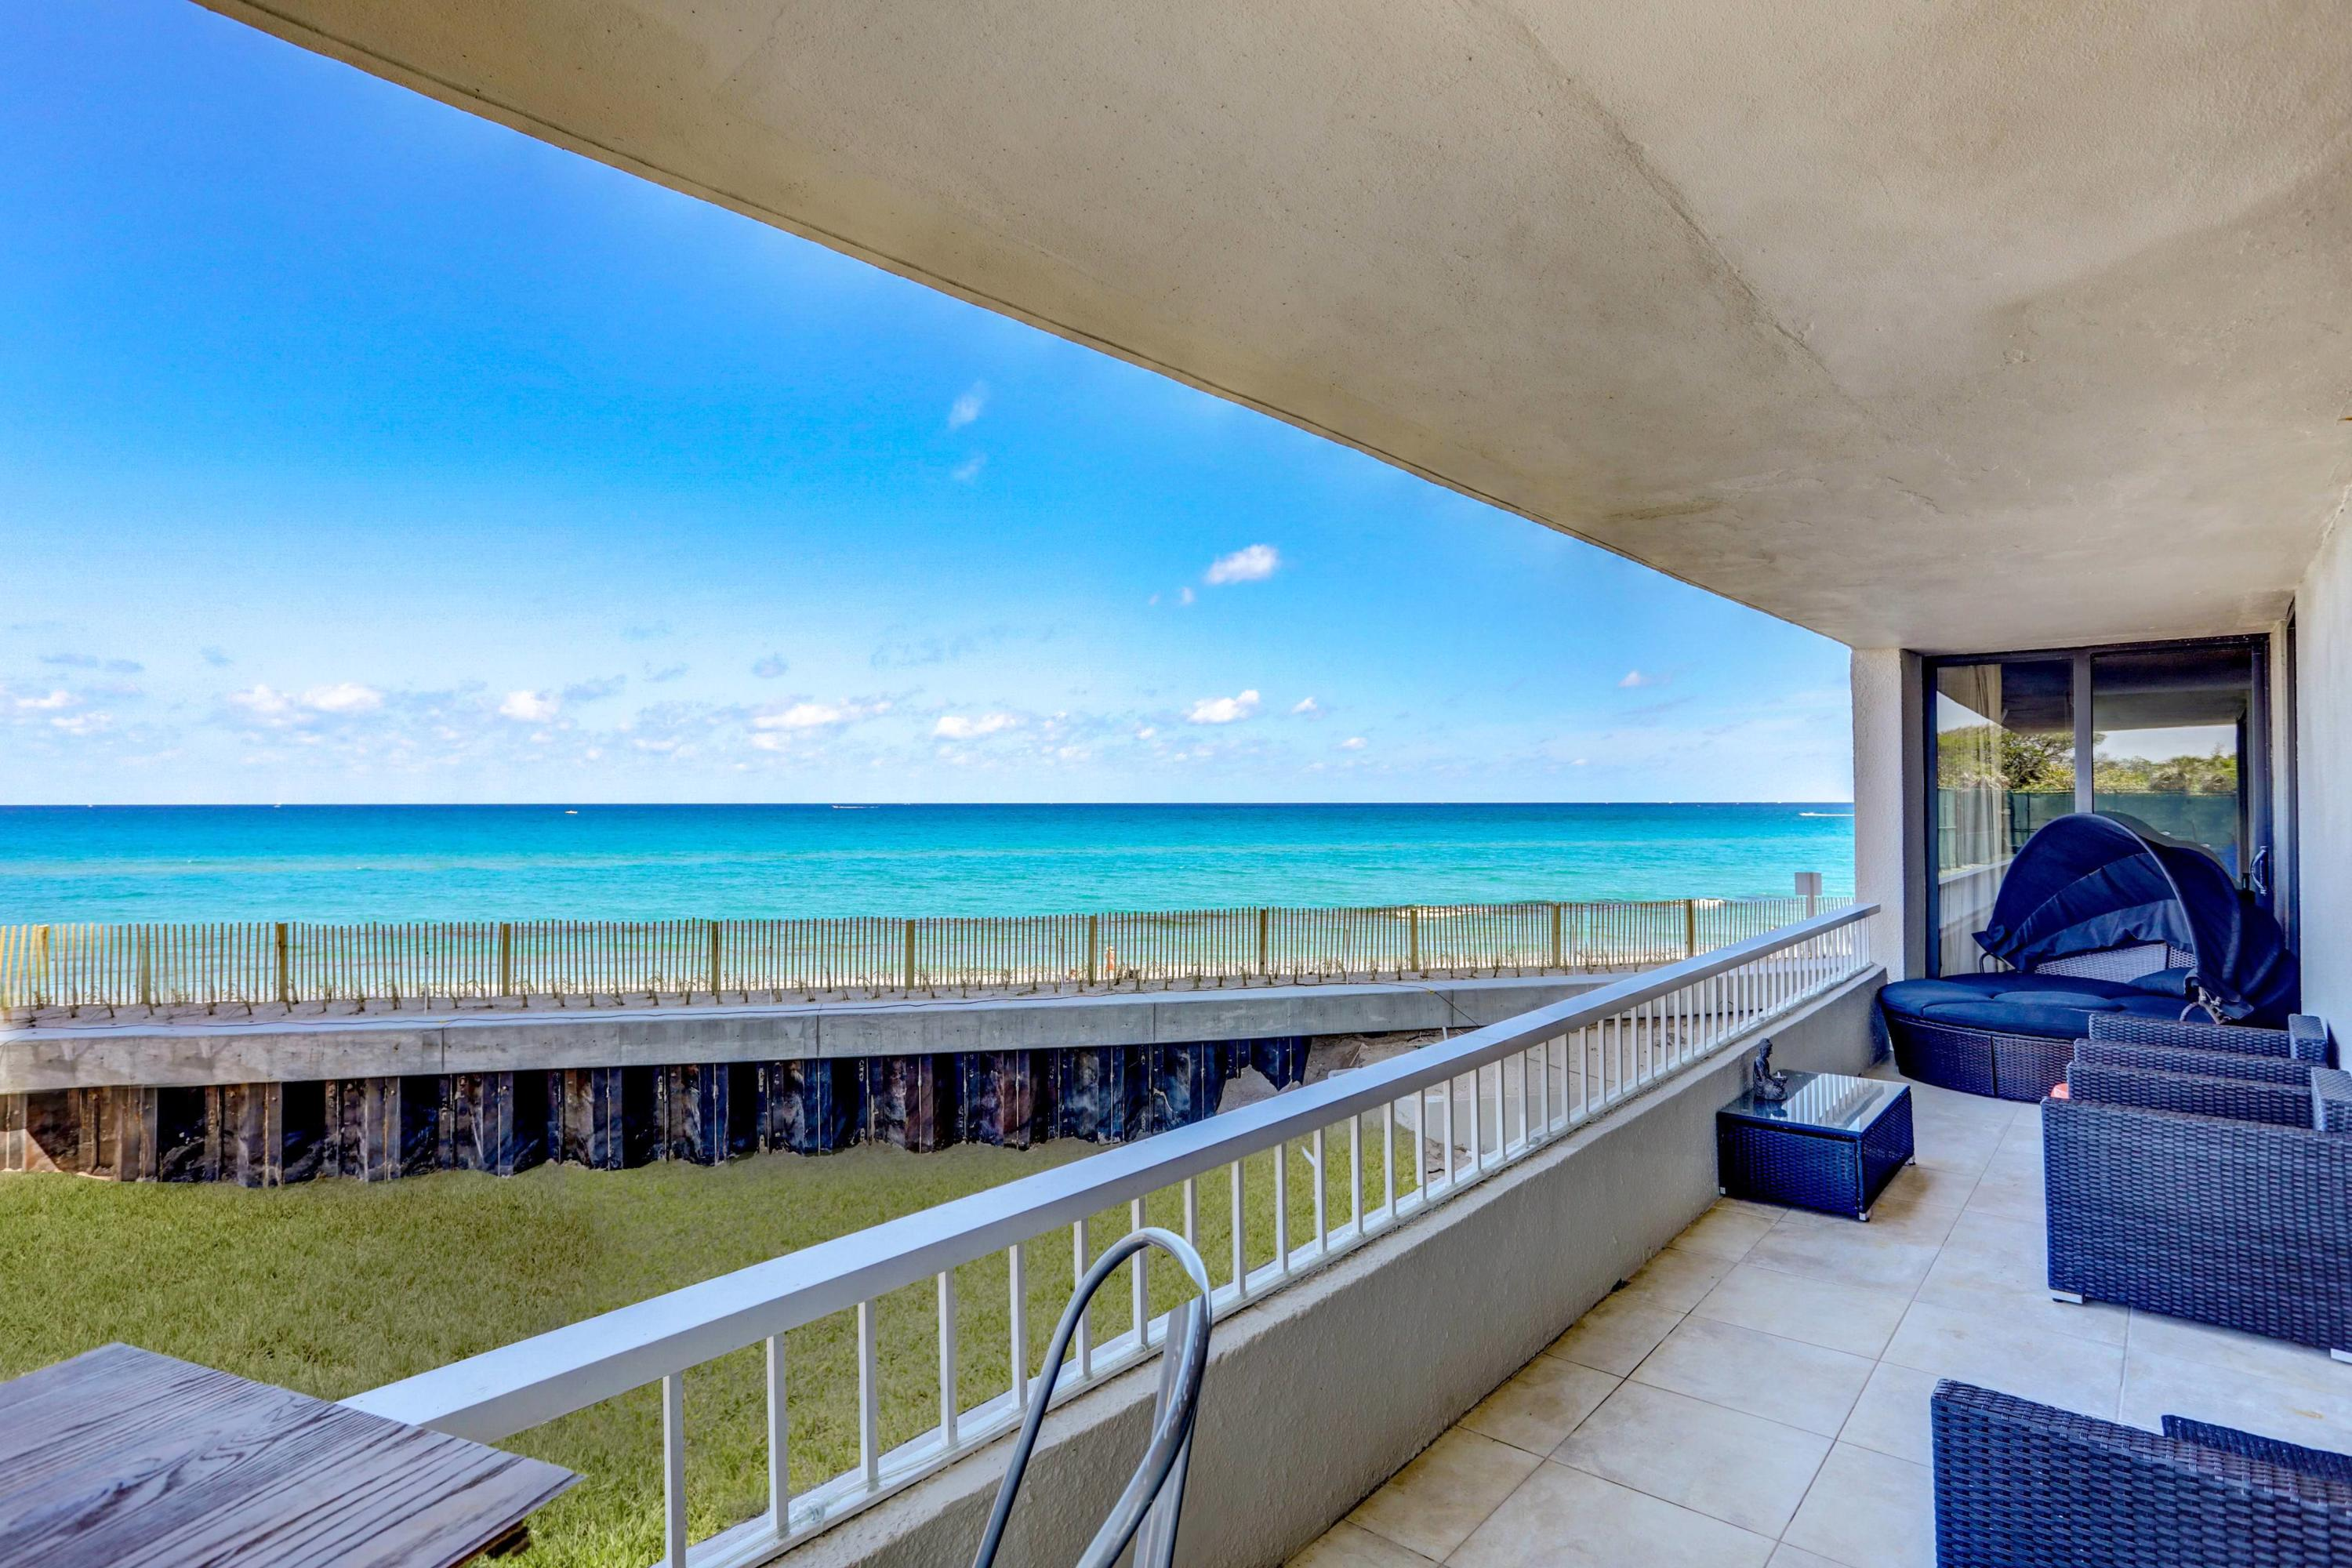 LOW FLOOR OCEANFRONT BEAUTY.DIRECT OCEAN VIEW FROM YOUR 57 FOOT WRAP AROUND BALCONYHIGH IMPACT WINDOWS FROM FLOOR TO CEILING IN EVERY ROOM, ONLY 4 UNITS PER FLOOR .2 BEDROOM 2 BATHROOMS , OPEN KITCHEN STAINLESS STEEL APPLIANCES ,TILE FLOORS.2 HEATED POOLS,4 TENNIS COURTS ,PUTTING GREEN,SHUFFLE BOARD,BBQ AREA,NEW CLUBHOUSE,24 HOUR SECURITY GUARD, AND MOST IMPORTANT 1200 FEET OF SANDY BEACH AT YOUR FOOTSTEPS.THIS UNIT IS PRICED RIGHT TO SELL.